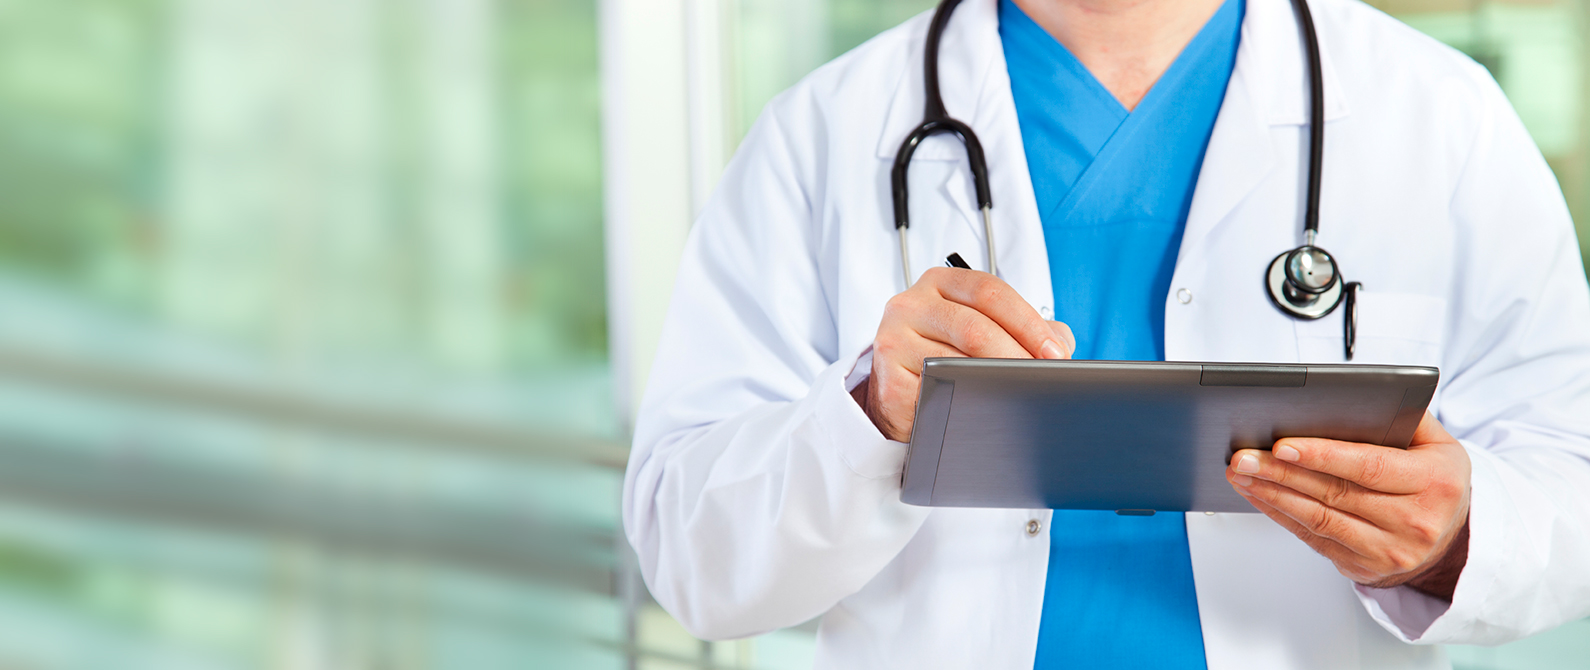 image of doctor holding tablet